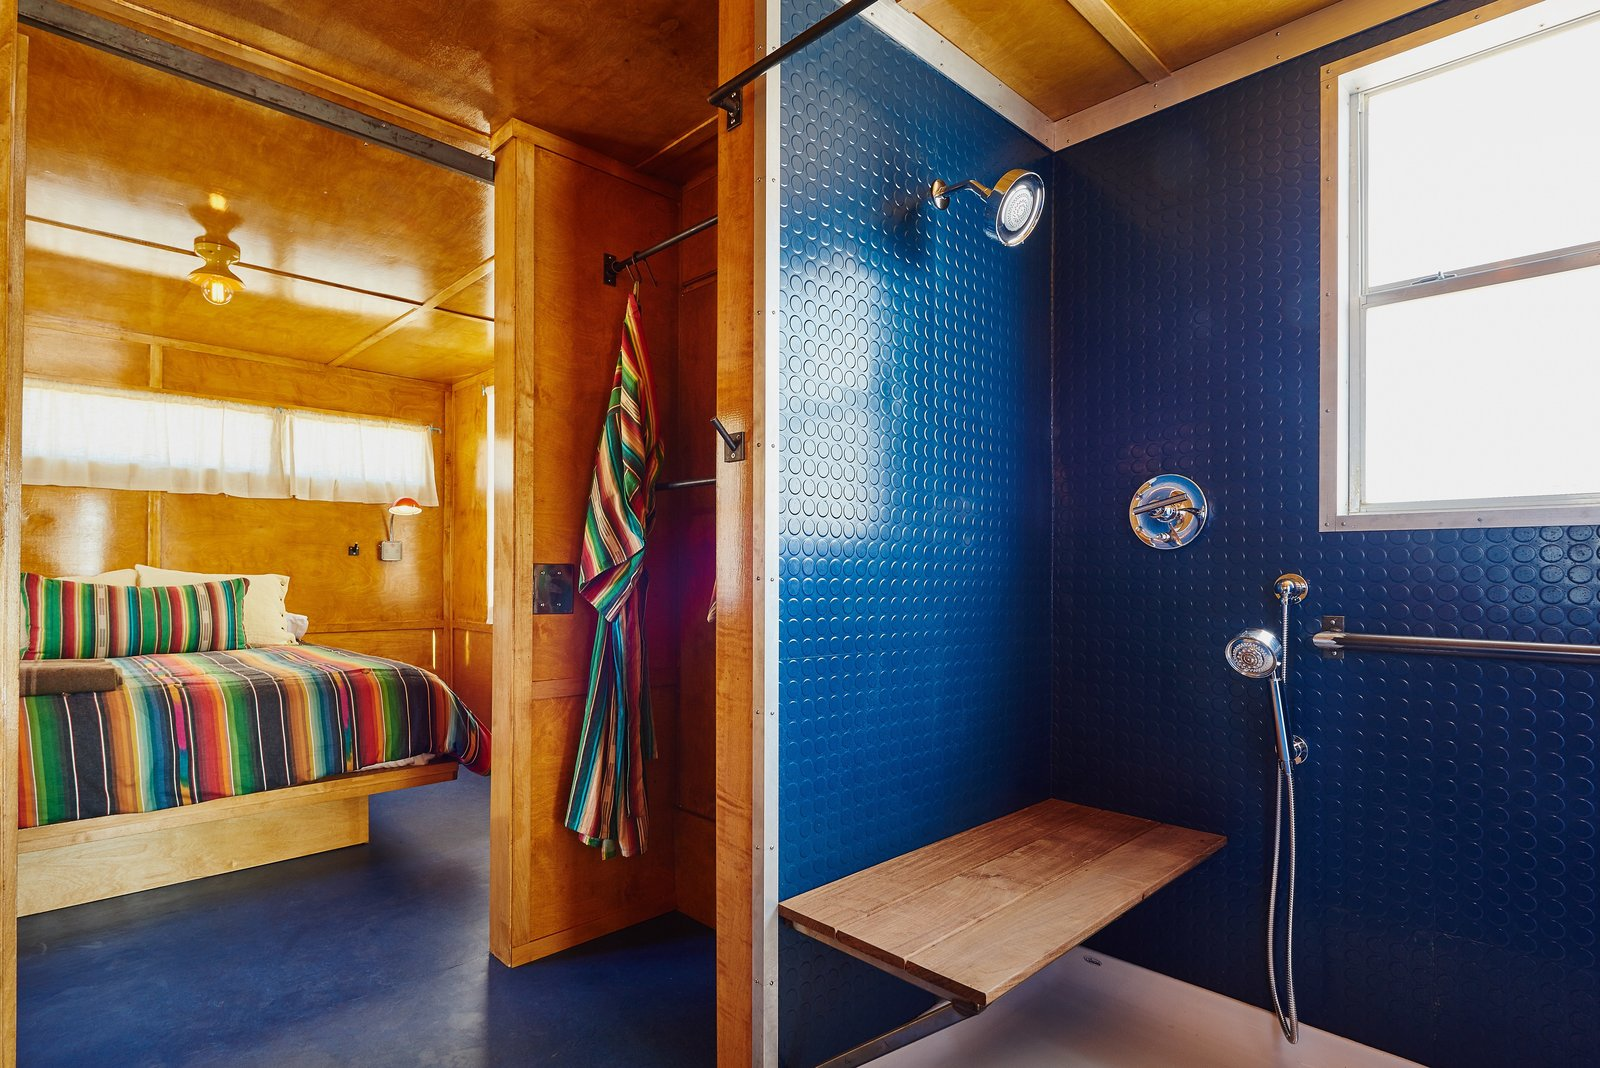 Bath Room, Ceiling Lighting, and Open Shower Inside this trailer, the blue shower and floor contrast warmly with the birch interior.    Photo 3 of 12 in Let Your Creativity Soar at This Eclectic Hotel With Tents, Tepees, Yurts, and Trailers